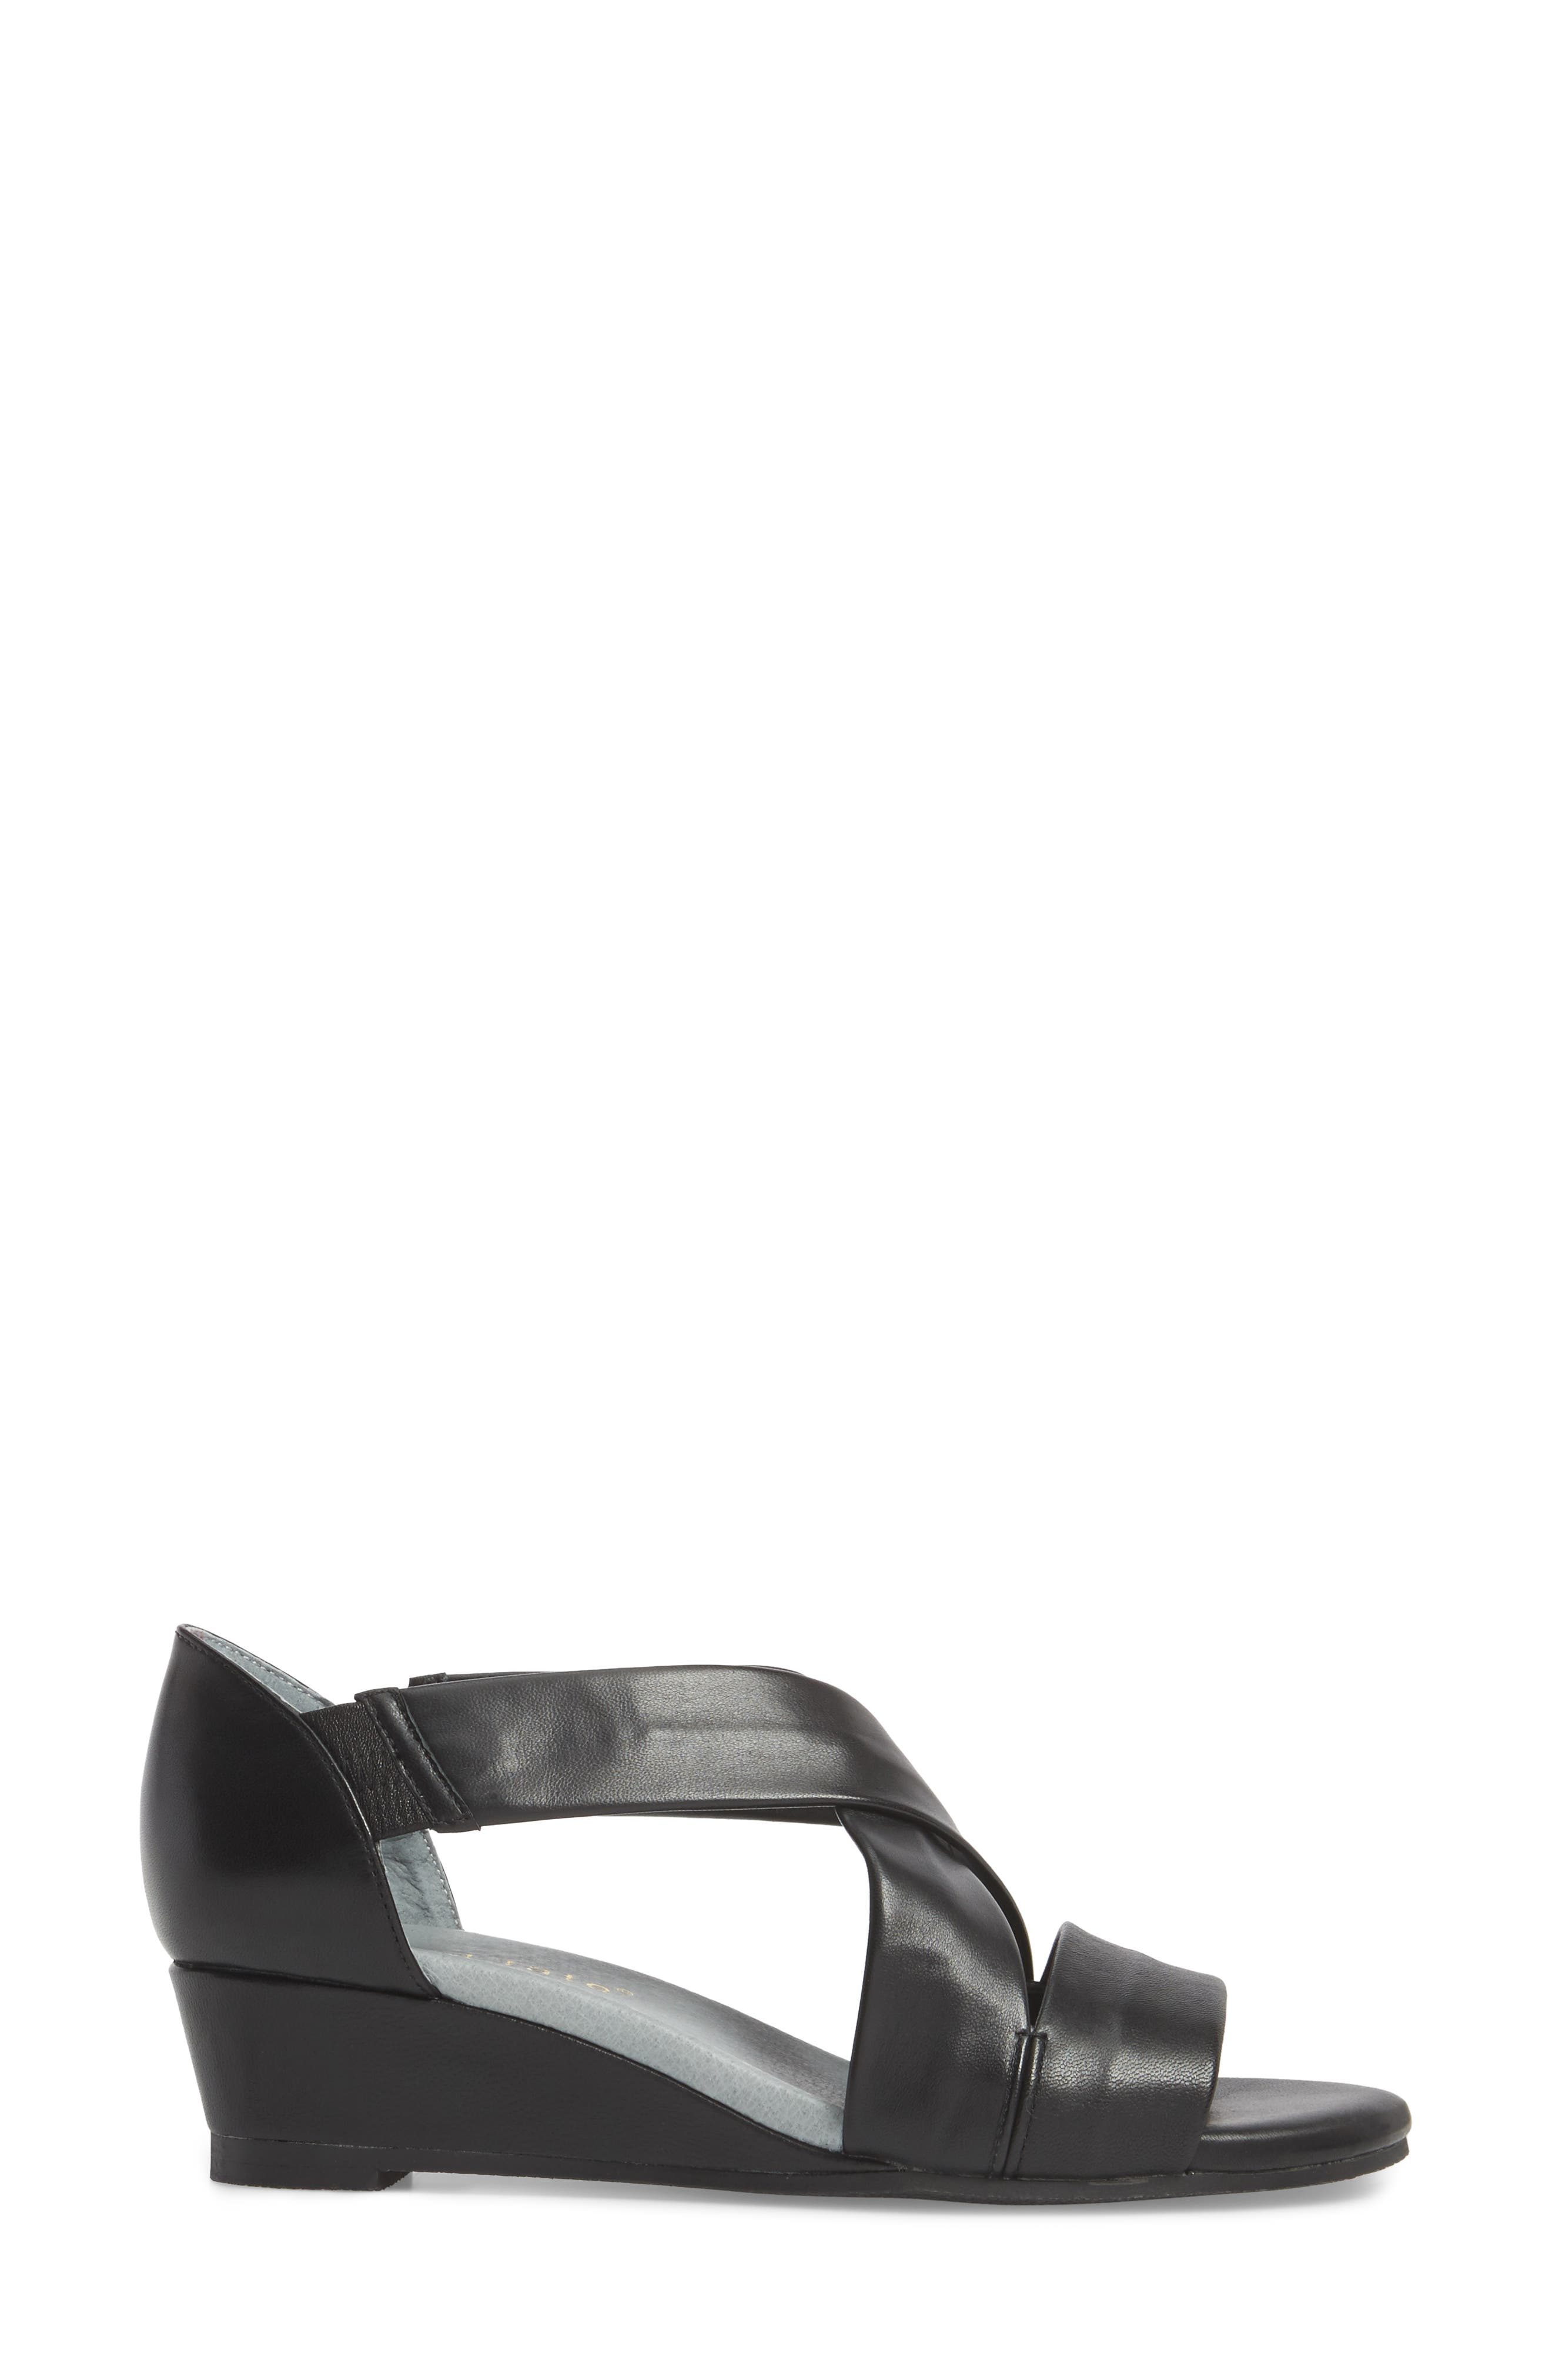 DAVID TATE, Swell Cross Strap Wedge Sandal, Alternate thumbnail 3, color, BLACK LEATHER